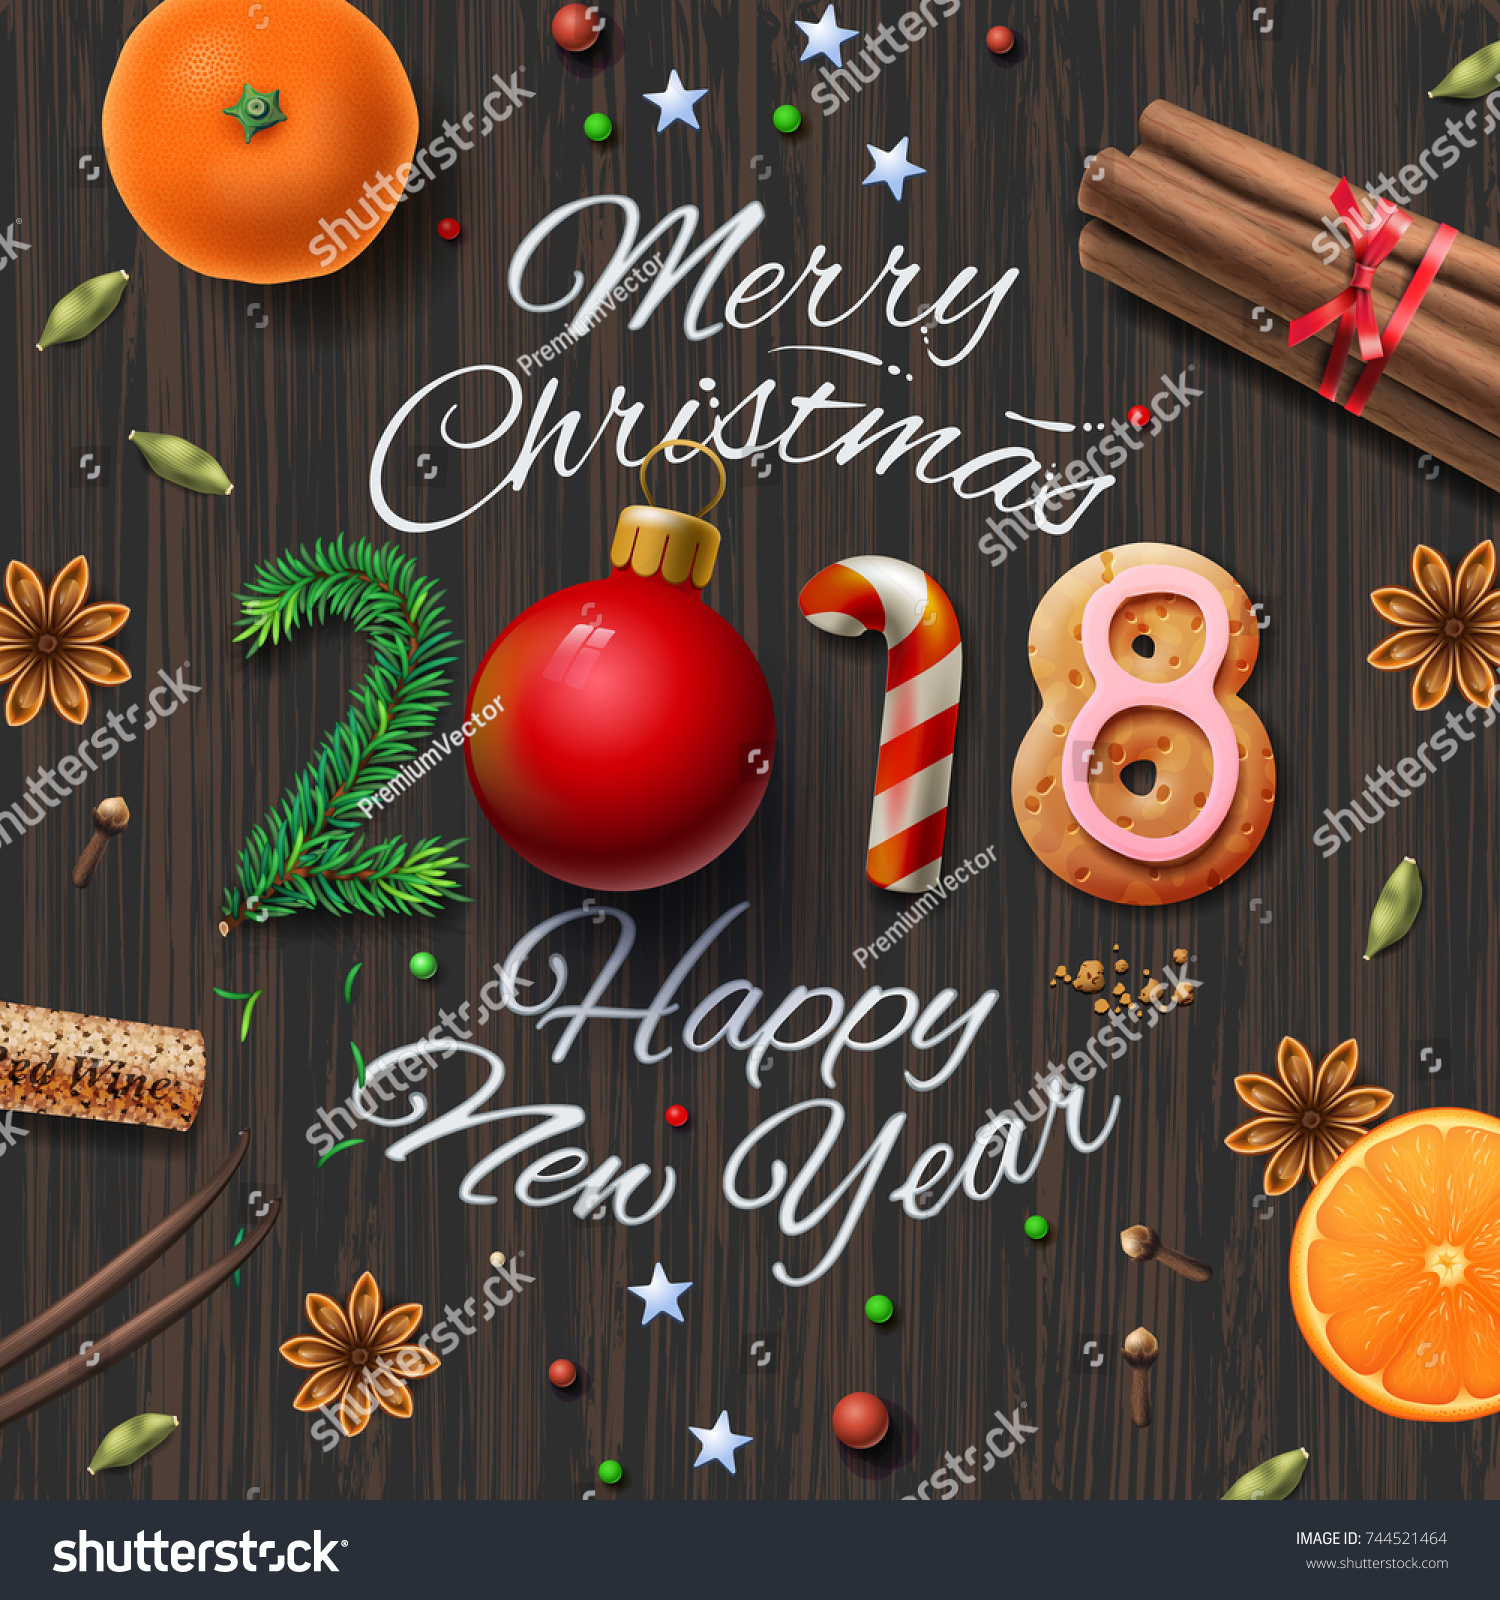 Merry Christmas Happy New Year 2018 Stock-Vektorgrafik (Lizenzfrei ...